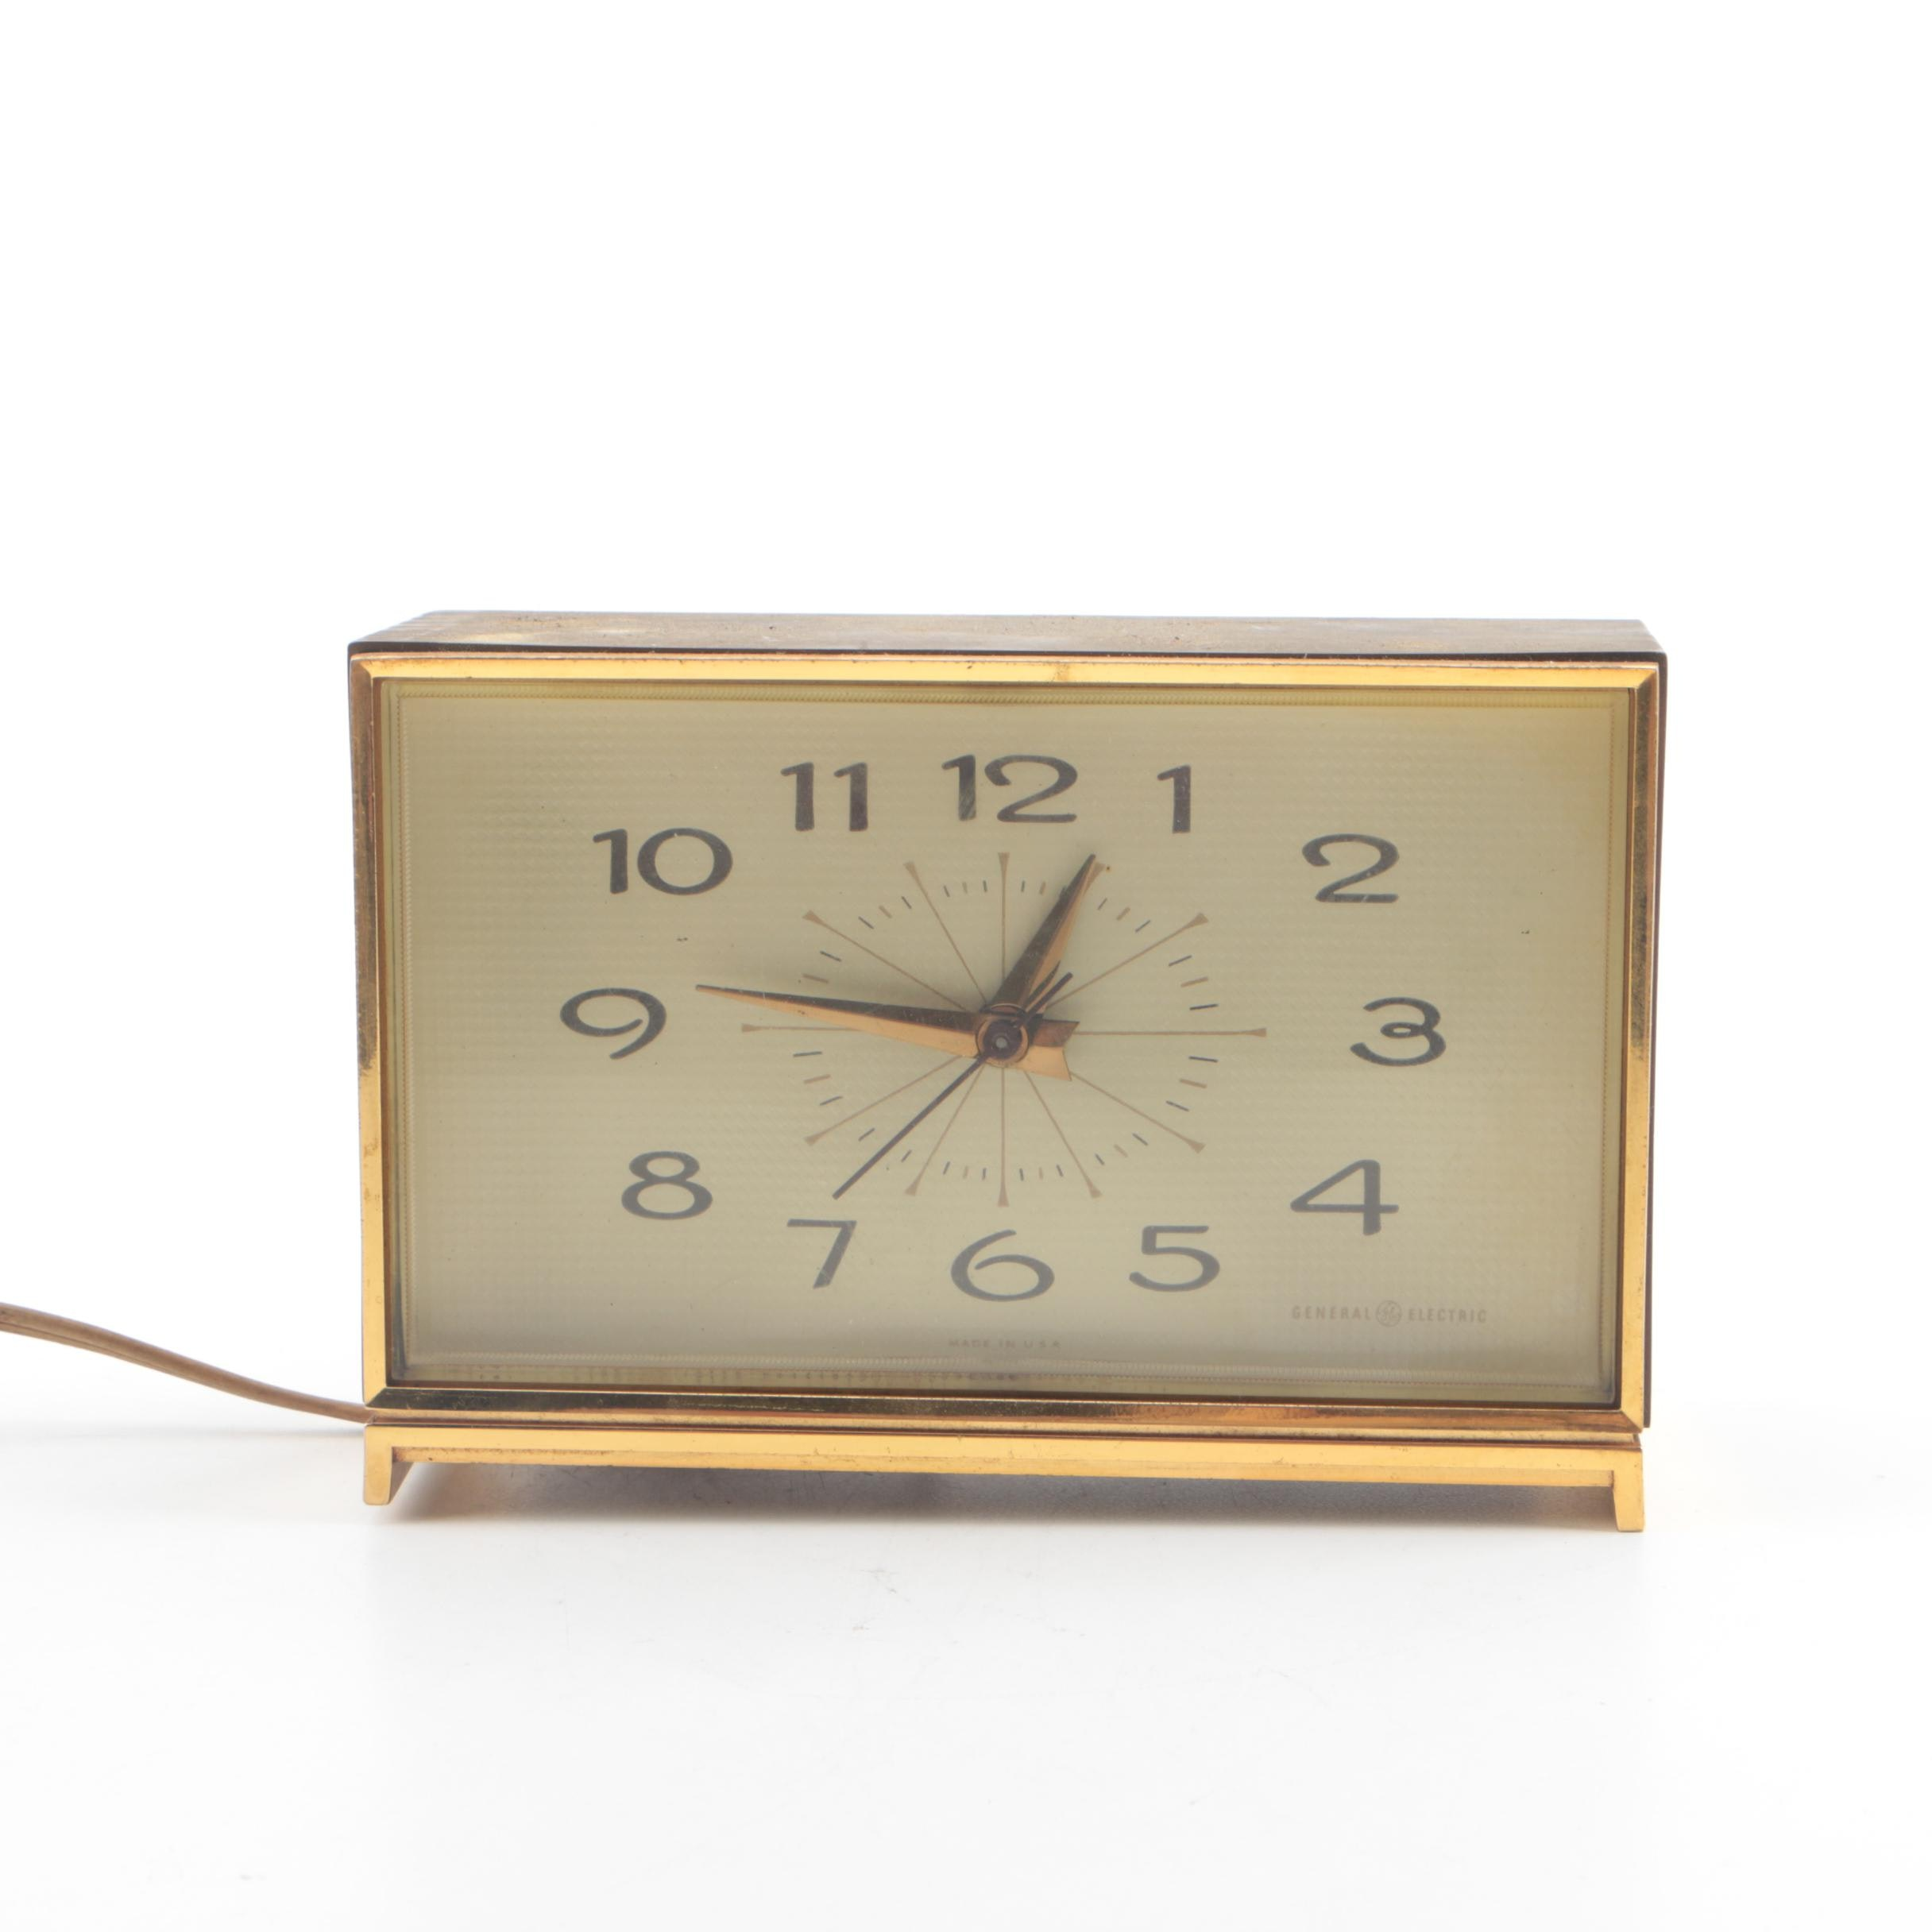 1970s General Electric Mid-Century Style Alarm Clock